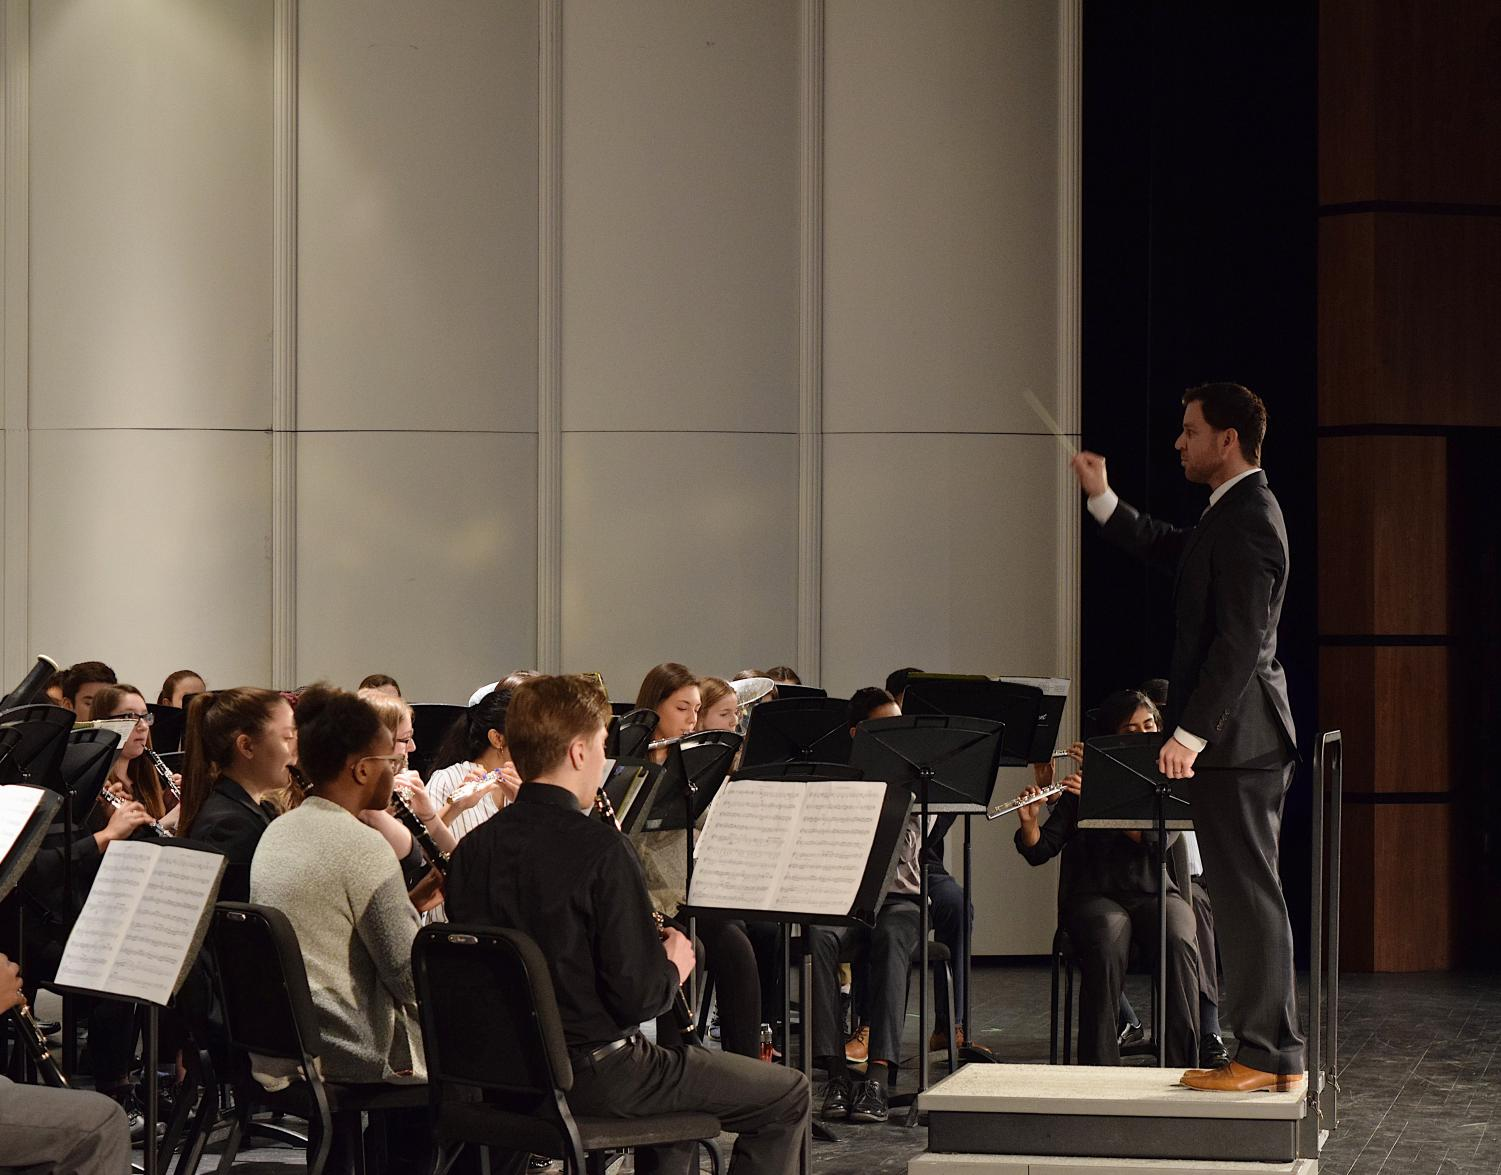 Mr.+Kaminsky+conducting+the+band+as+the+students+are+focused+on+the+notes.